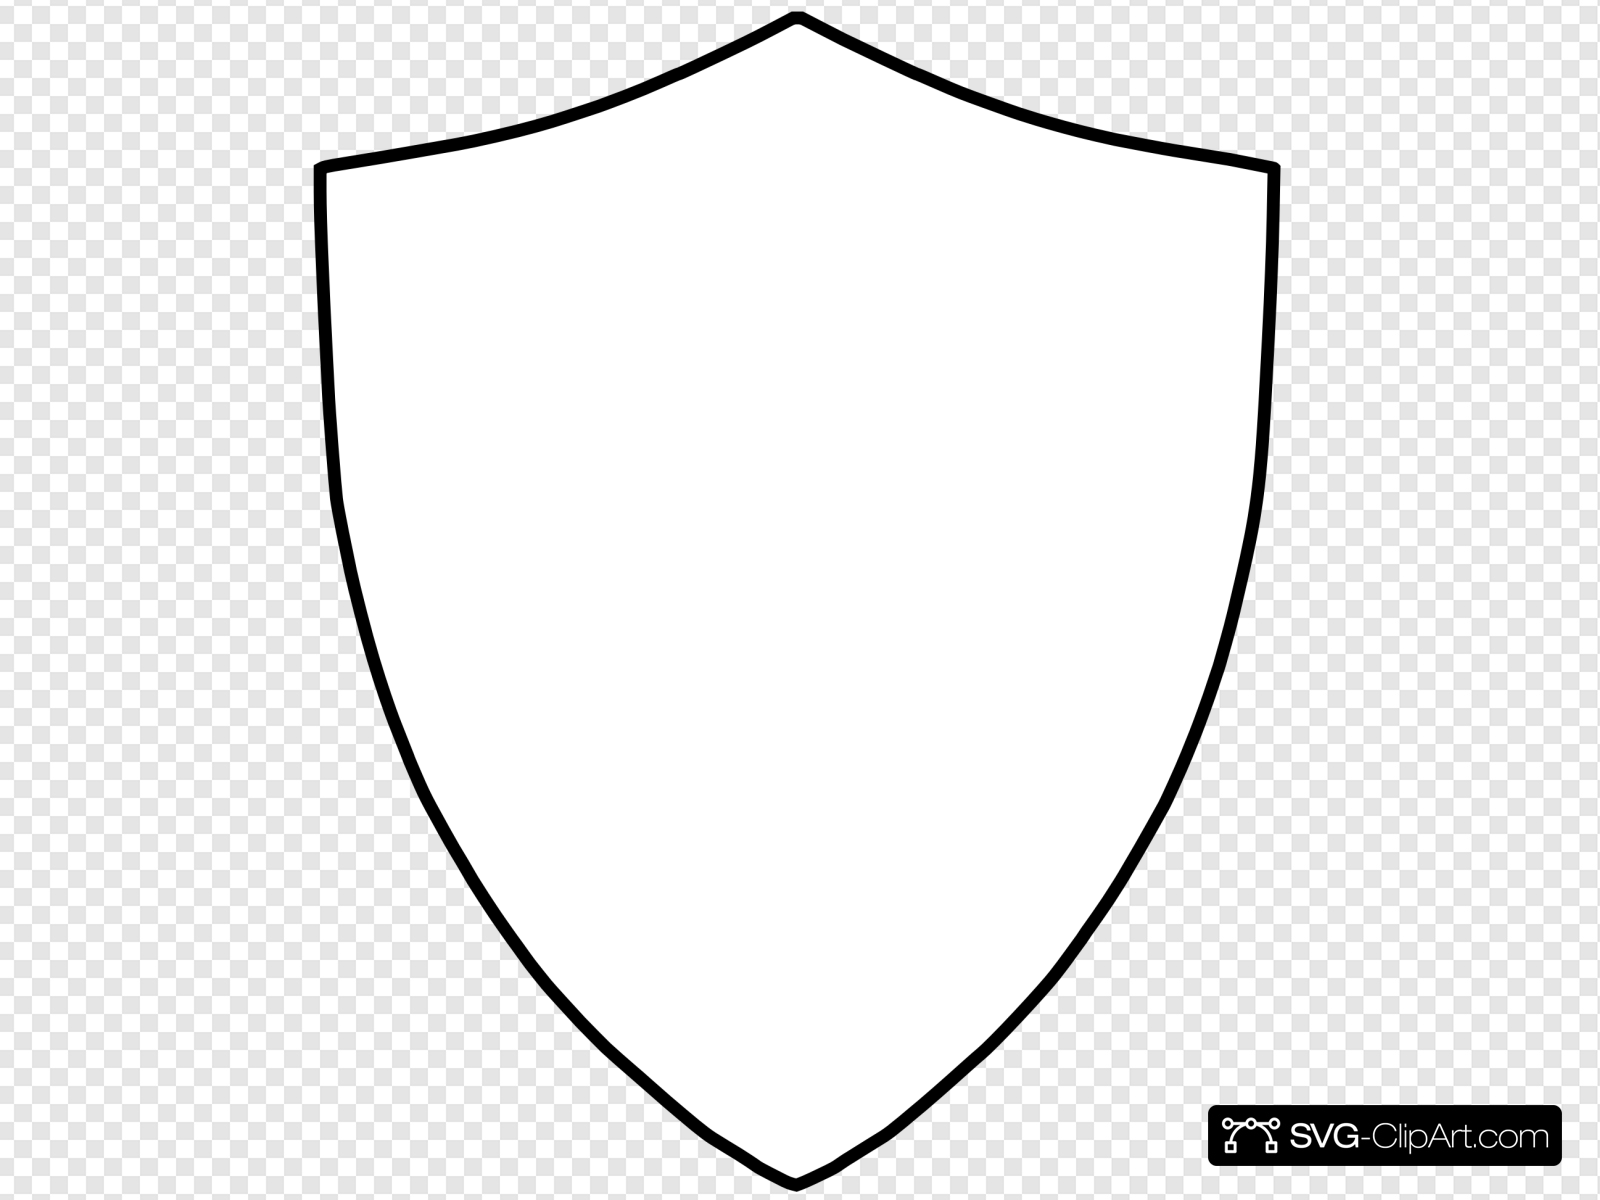 Badge clipart outline. Clip art icon and